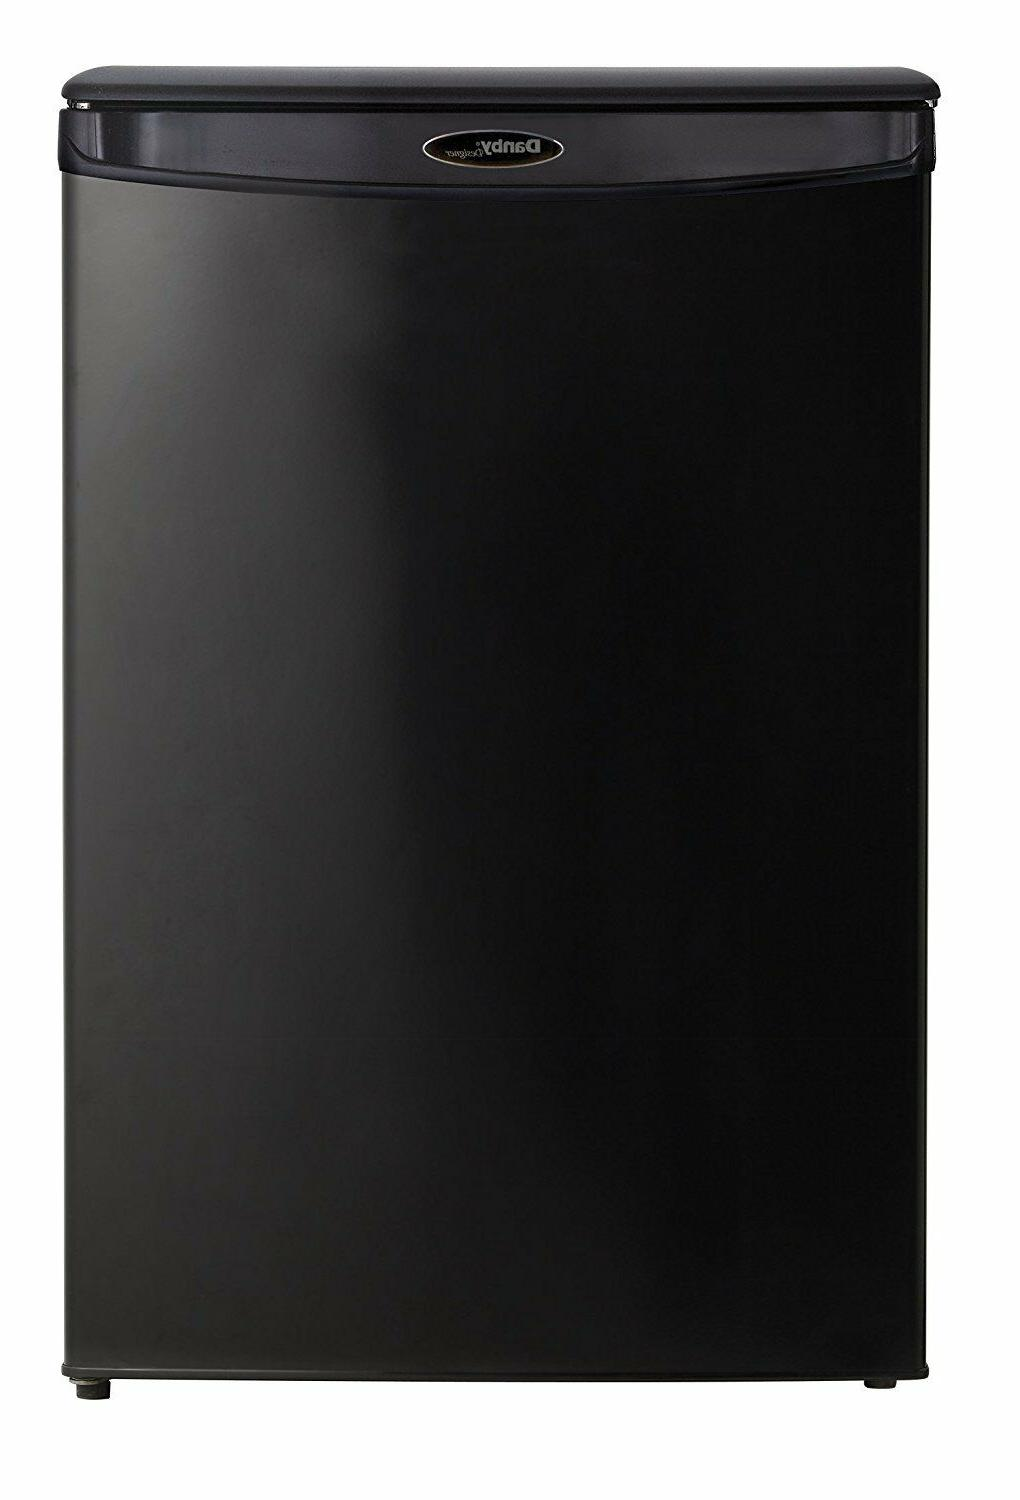 Danby Compact All Refrigerator Cubic Black